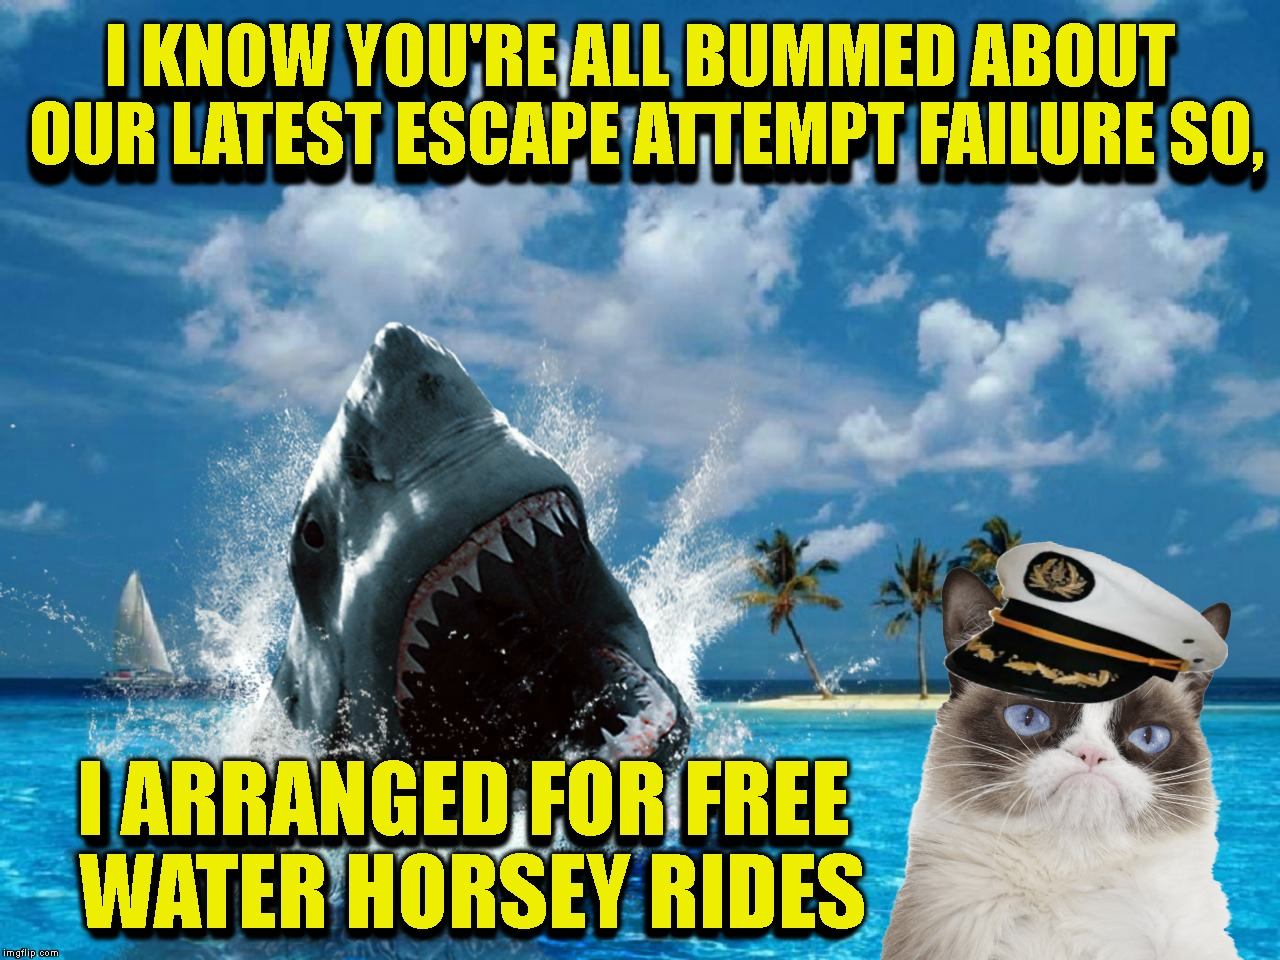 Not So Grumpy Cat Is Working On A Little Team Bonding (Gilligan's Island Week) | I KNOW YOU'RE ALL BUMMED ABOUT OUR LATEST ESCAPE ATTEMPT FAILURE SO, I ARRANGED FOR FREE WATER HORSEY RIDES I ARRANGED FOR FREE WATER HORSEY | image tagged in gilligans island week,grumpy cat,fail,failure,gilligan's island,gilligans island | made w/ Imgflip meme maker